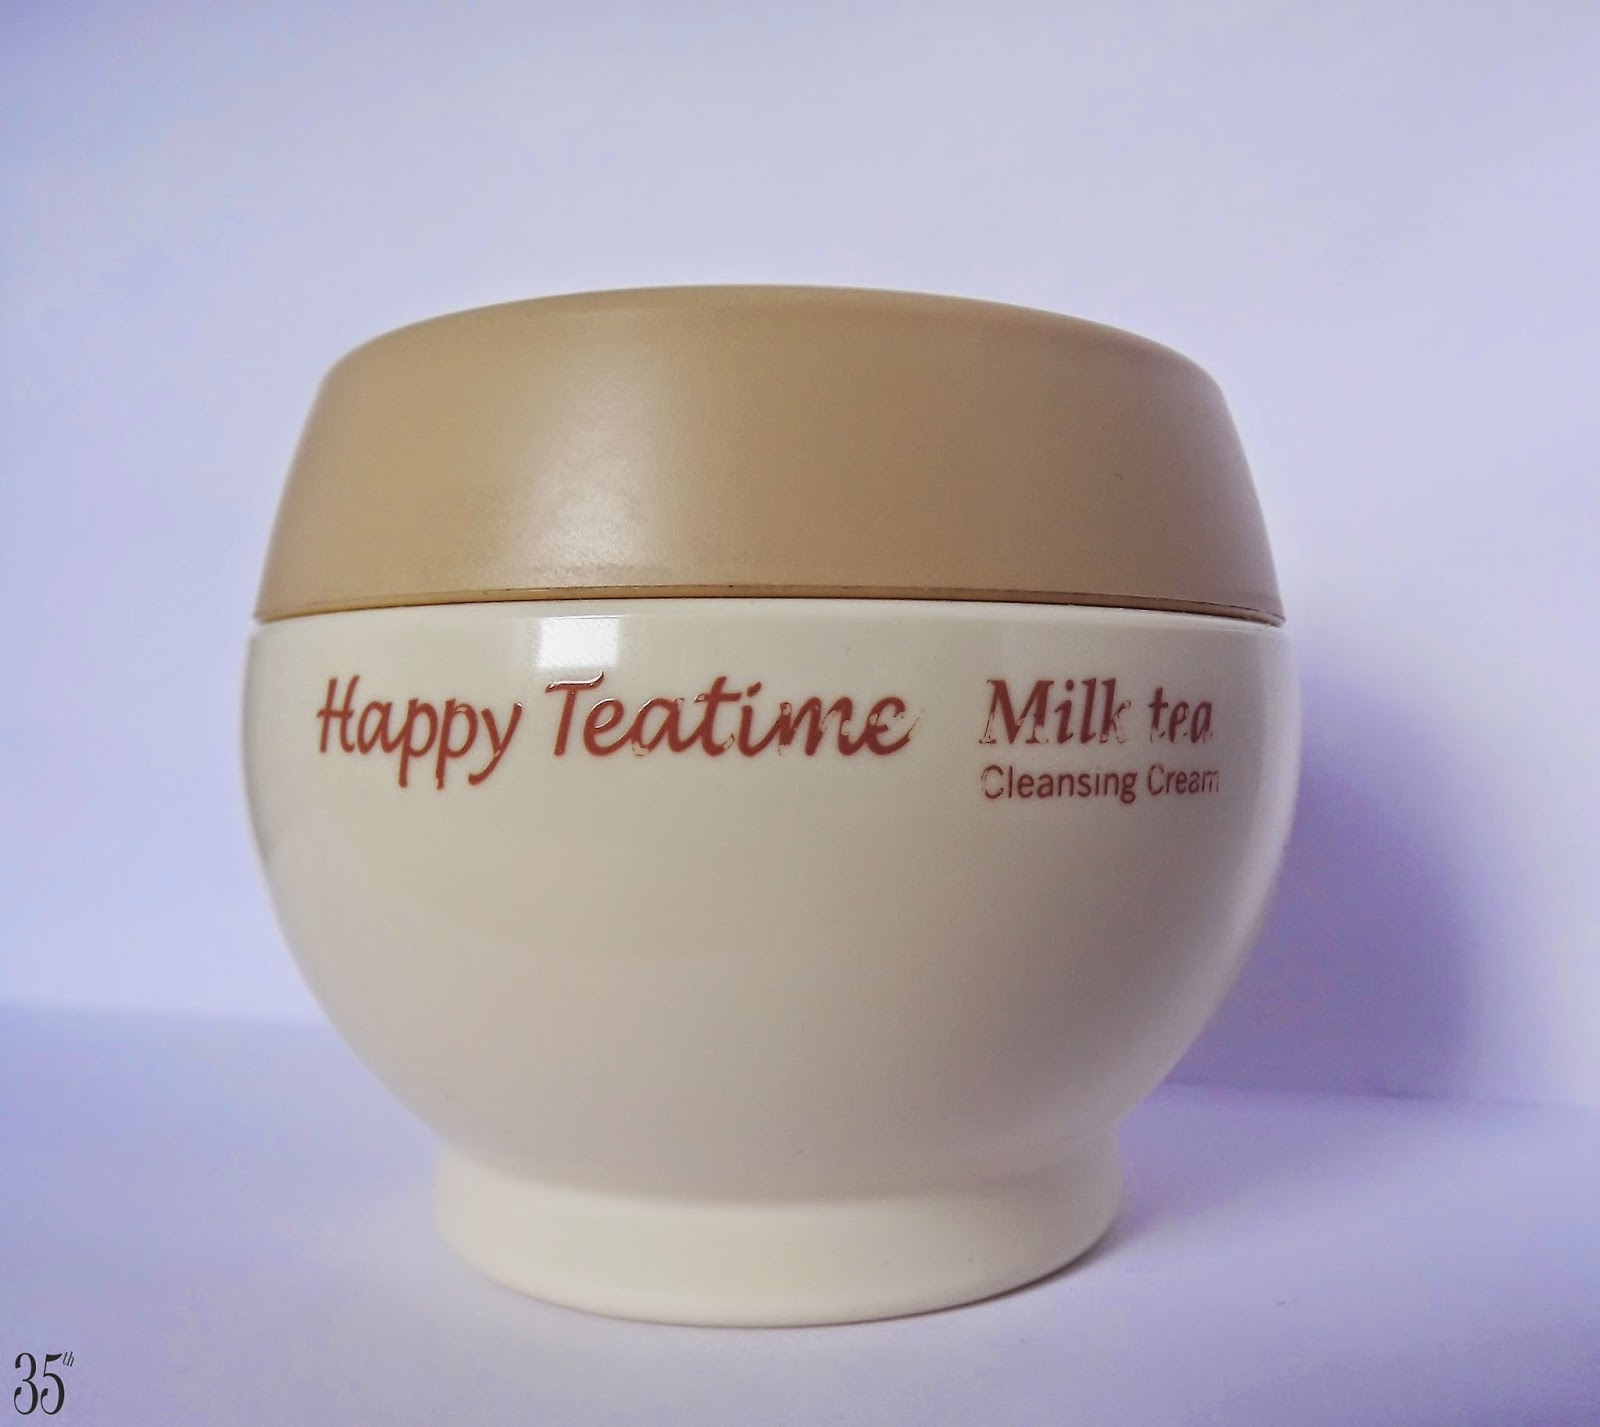 Etude House Happy Teatime Milk Tea Cleansing Cream